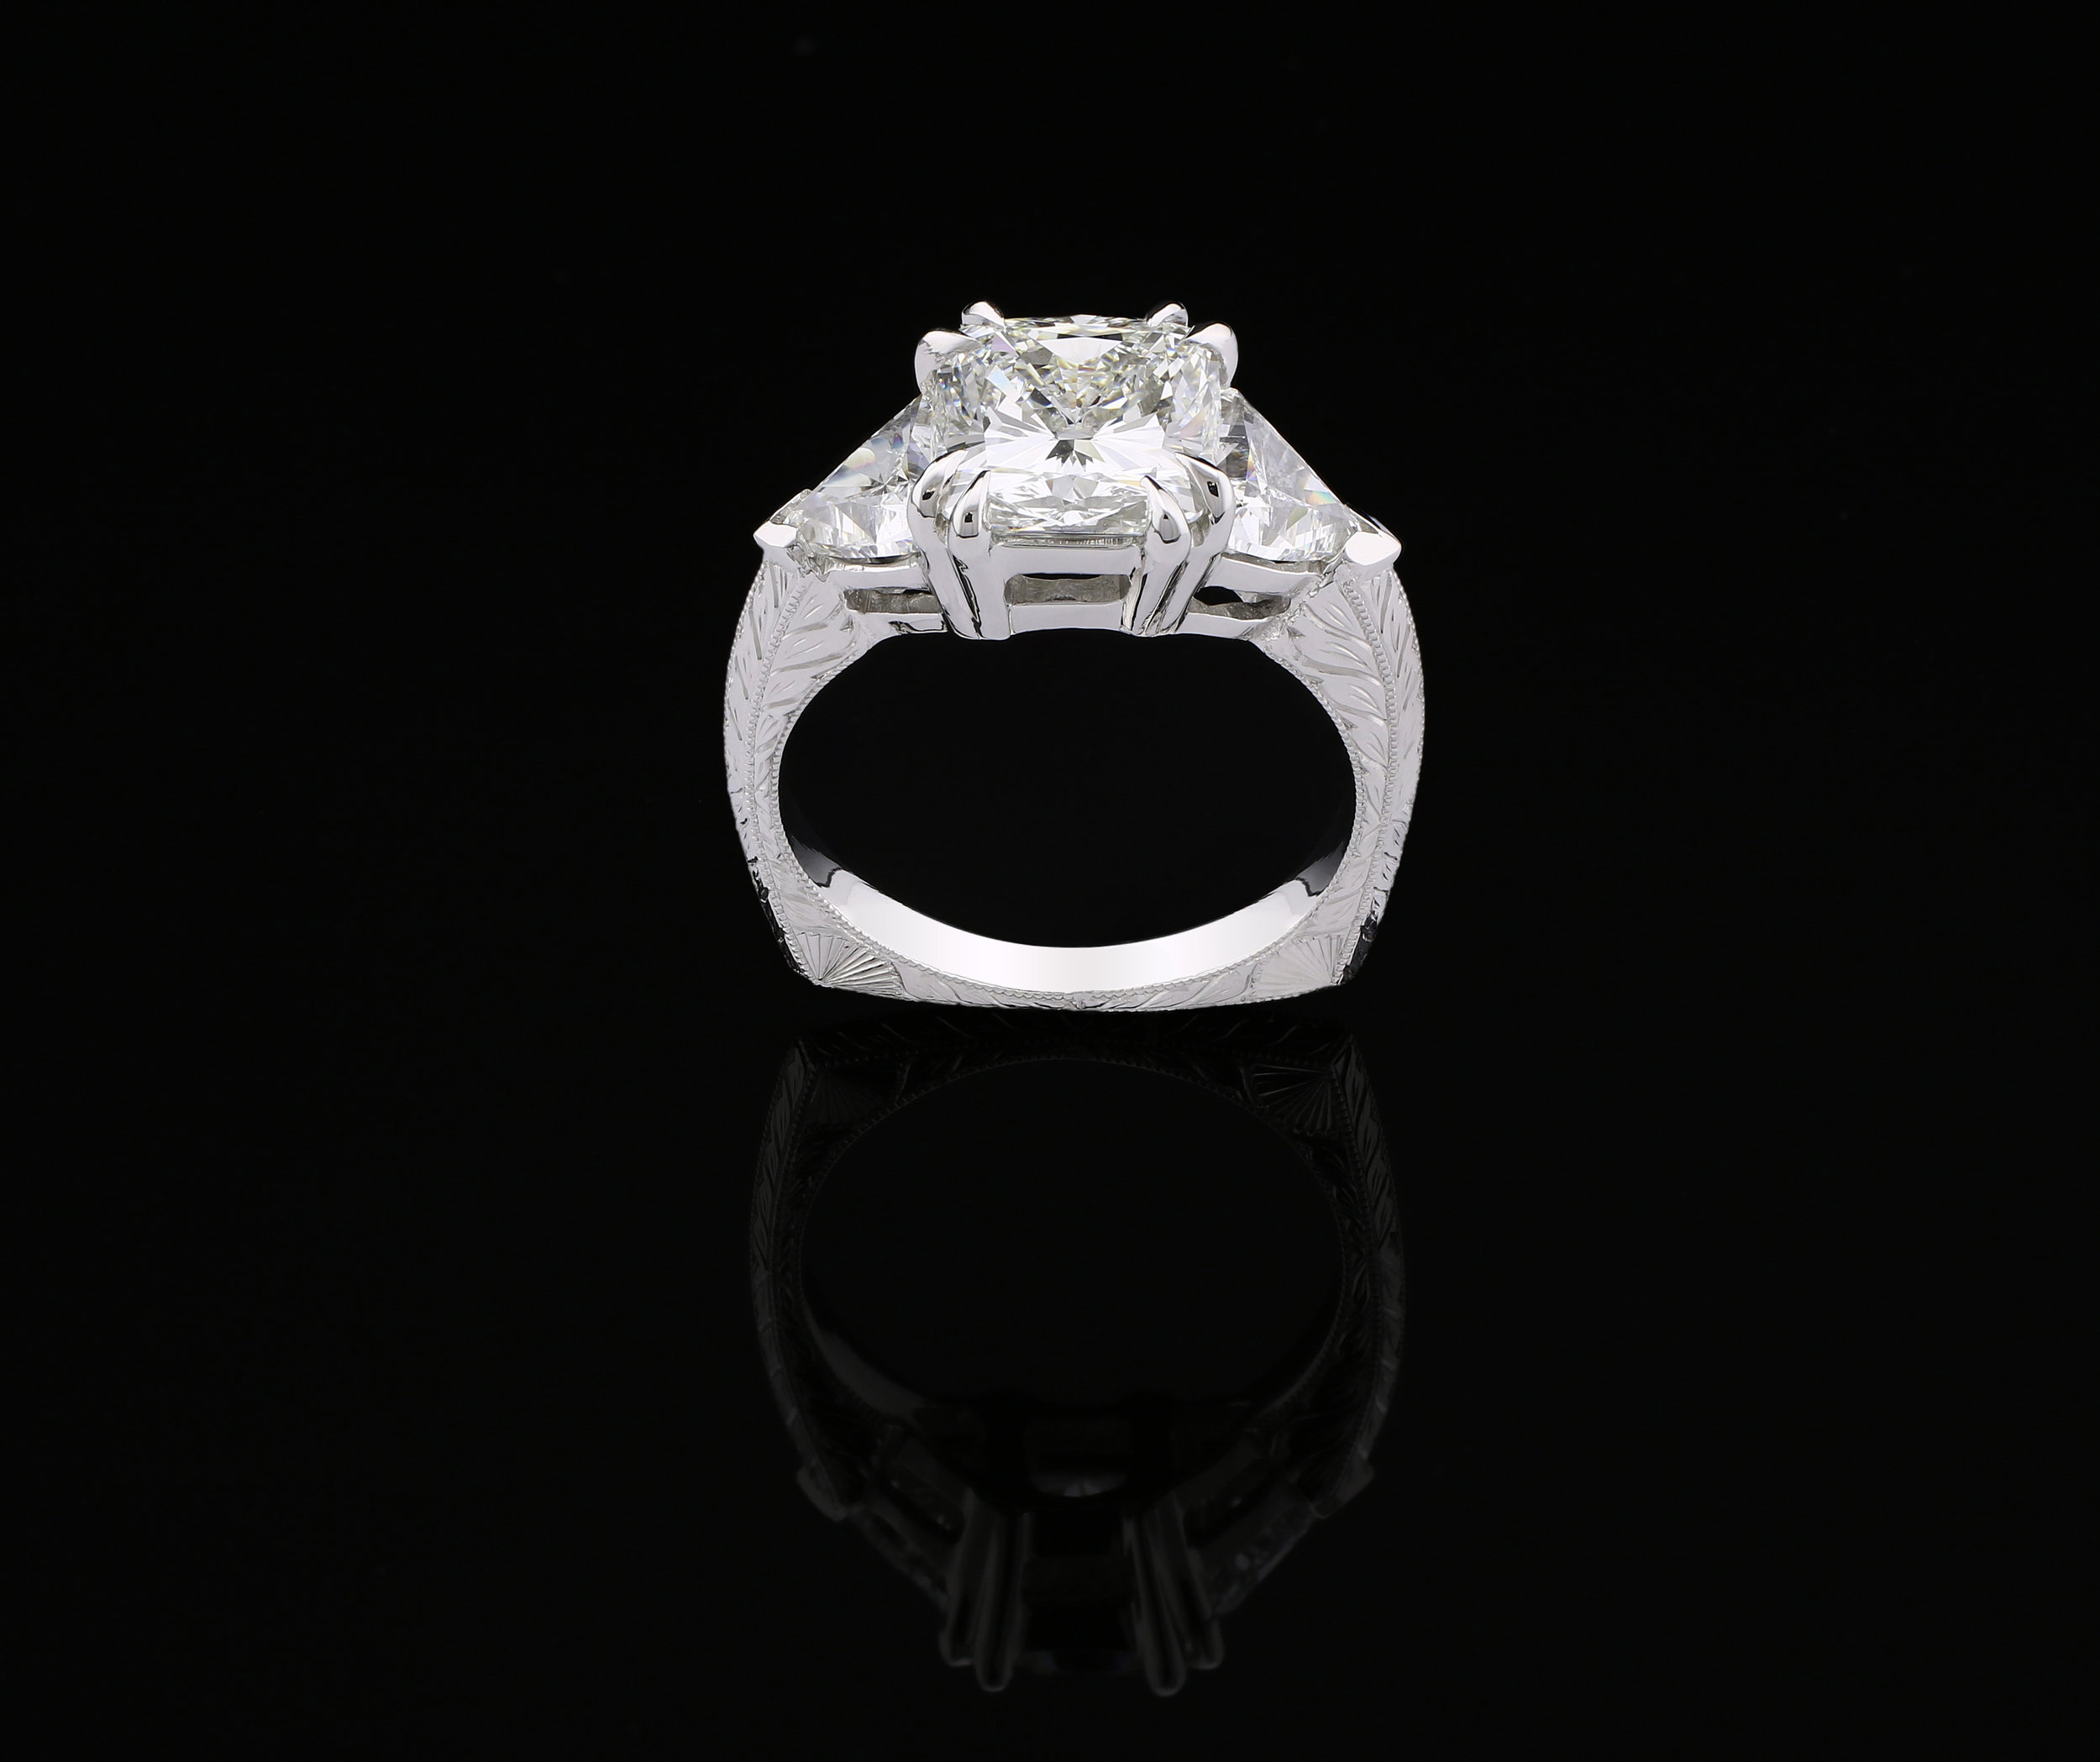 Custom Cushion Platinum Wedding Ring, 2018